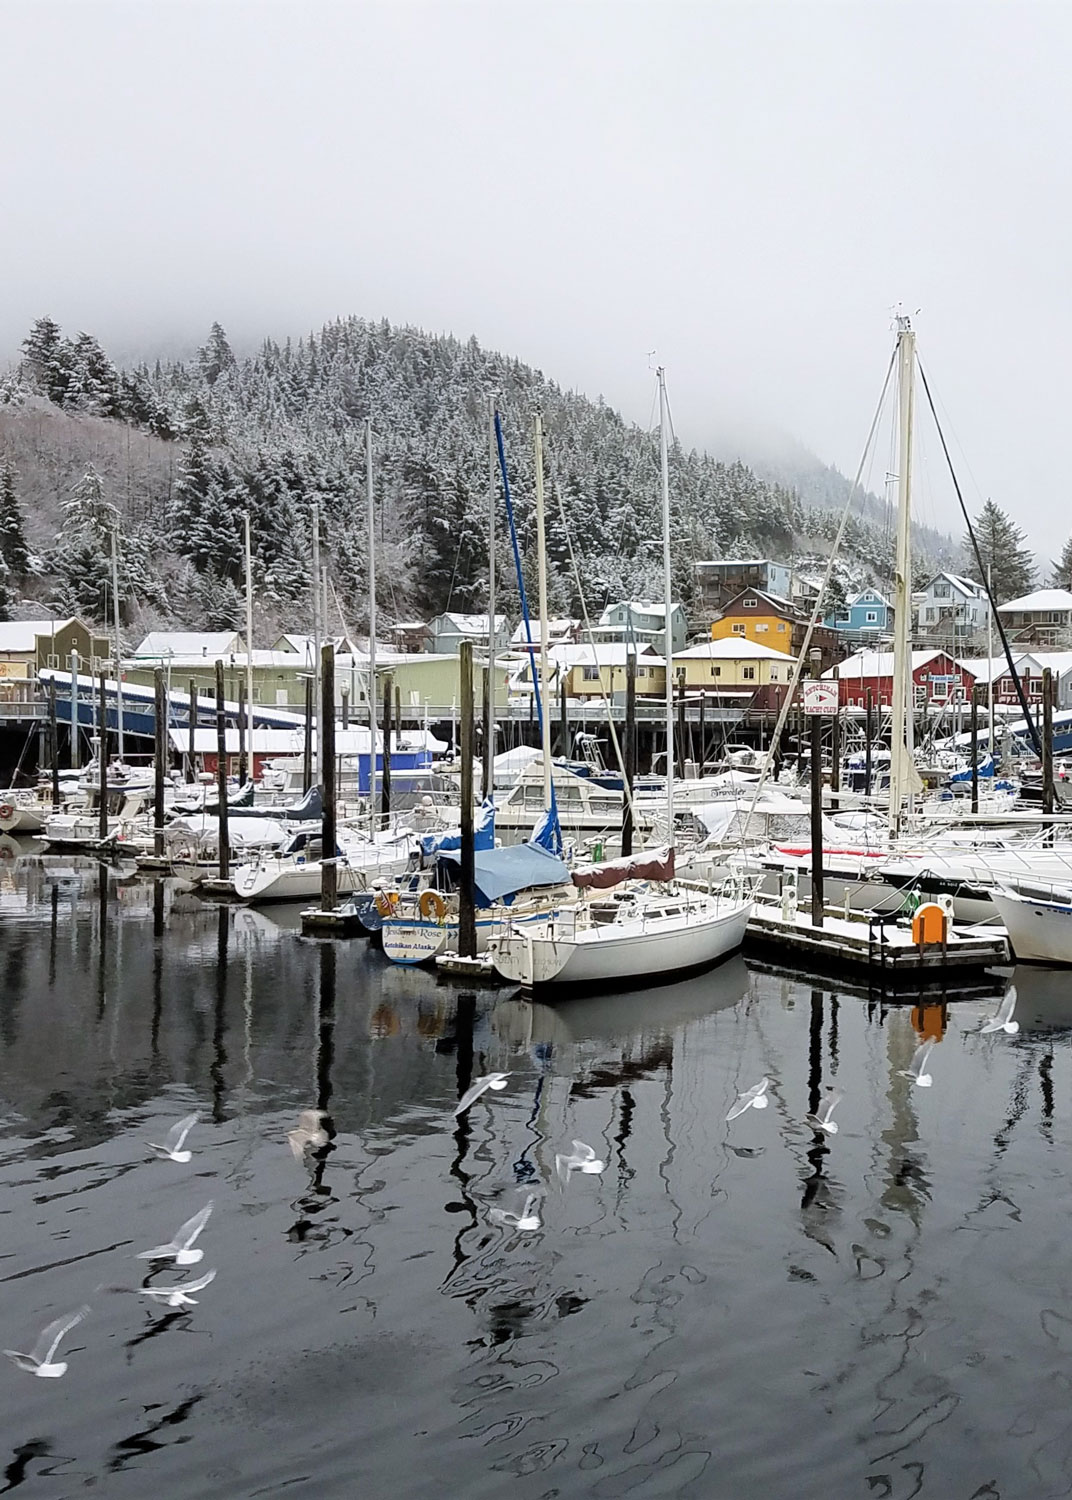 Always my favorite view of Ketchikan: Thomas Basin Boat Harbor and Deer Mountain hidden in the clouds above.